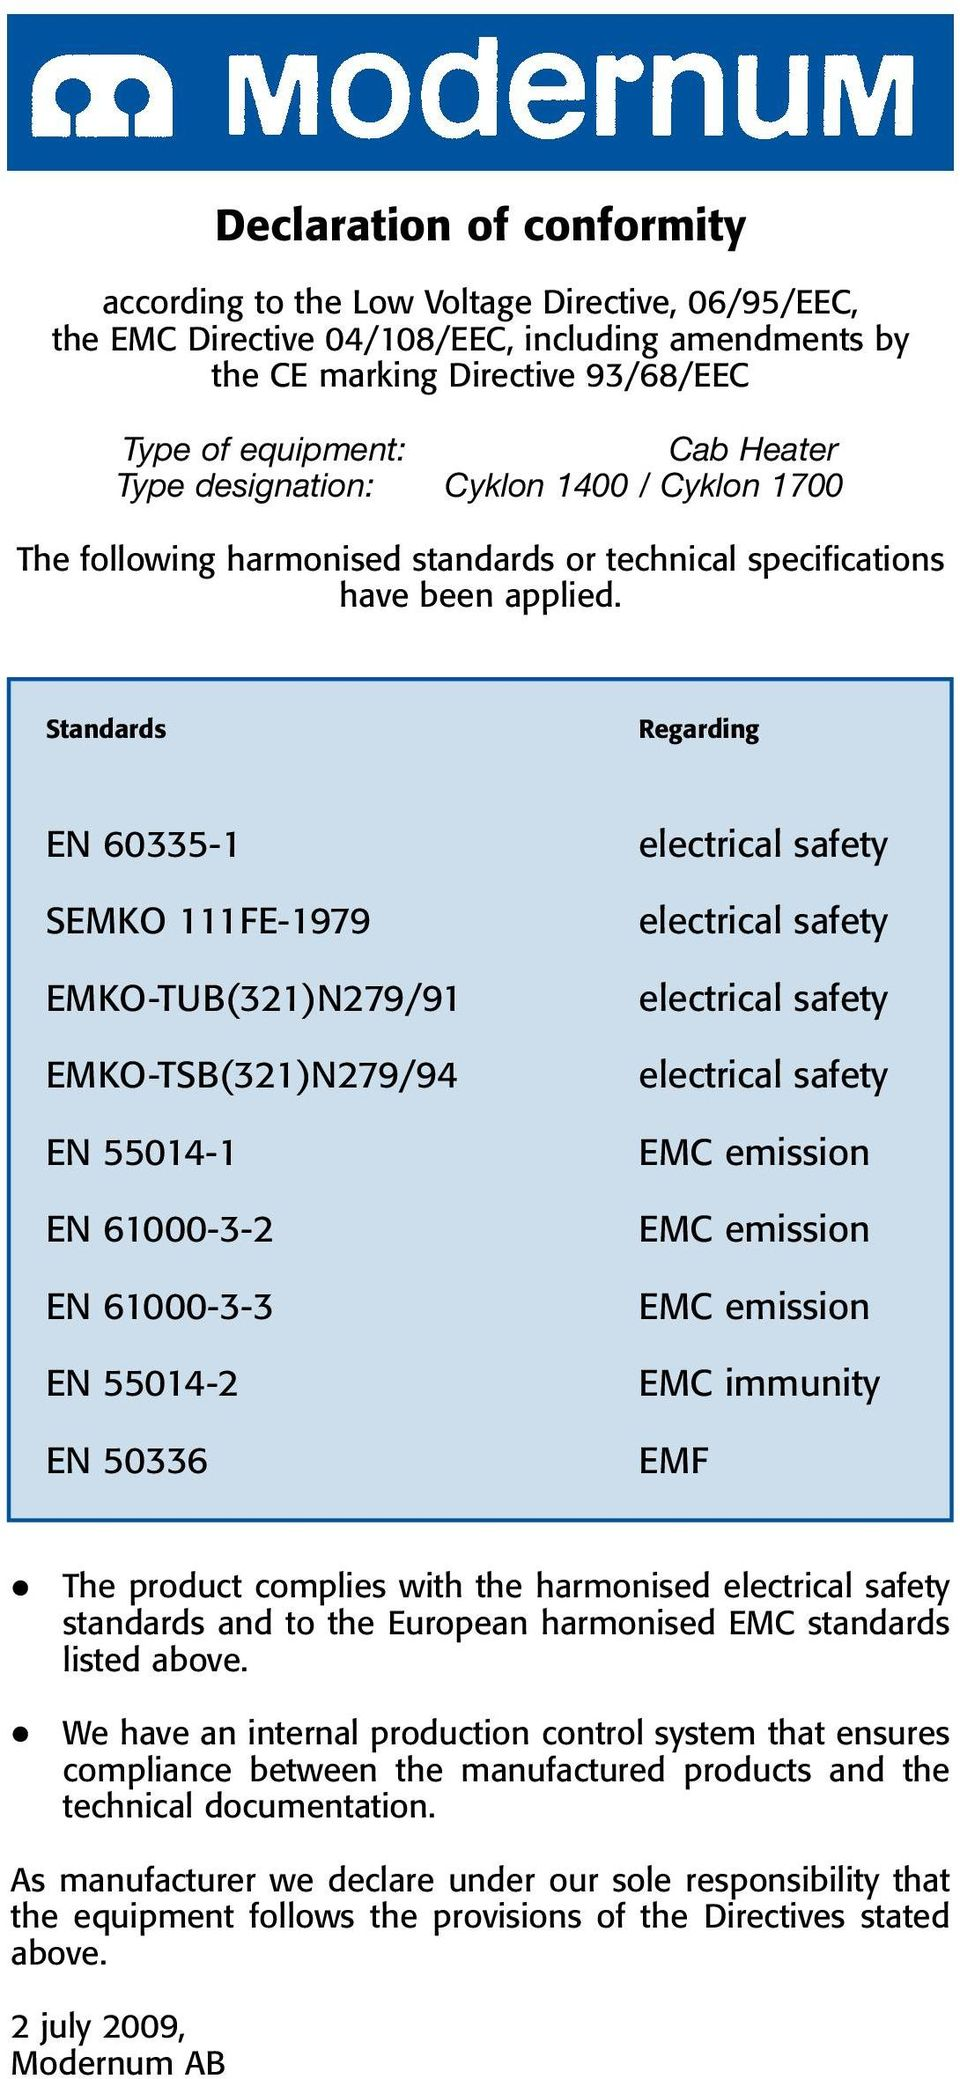 Standards Regarding EN 60335-1 SEMKO 111FE-1979 EMKO-TUB(321)N279/91 EMKO-TSB(321)N279/94 EN 55014-1 EN 61000-3-2 EN 61000-3-3 EN 55014-2 EN 50336 electrical safety electrical safety electrical